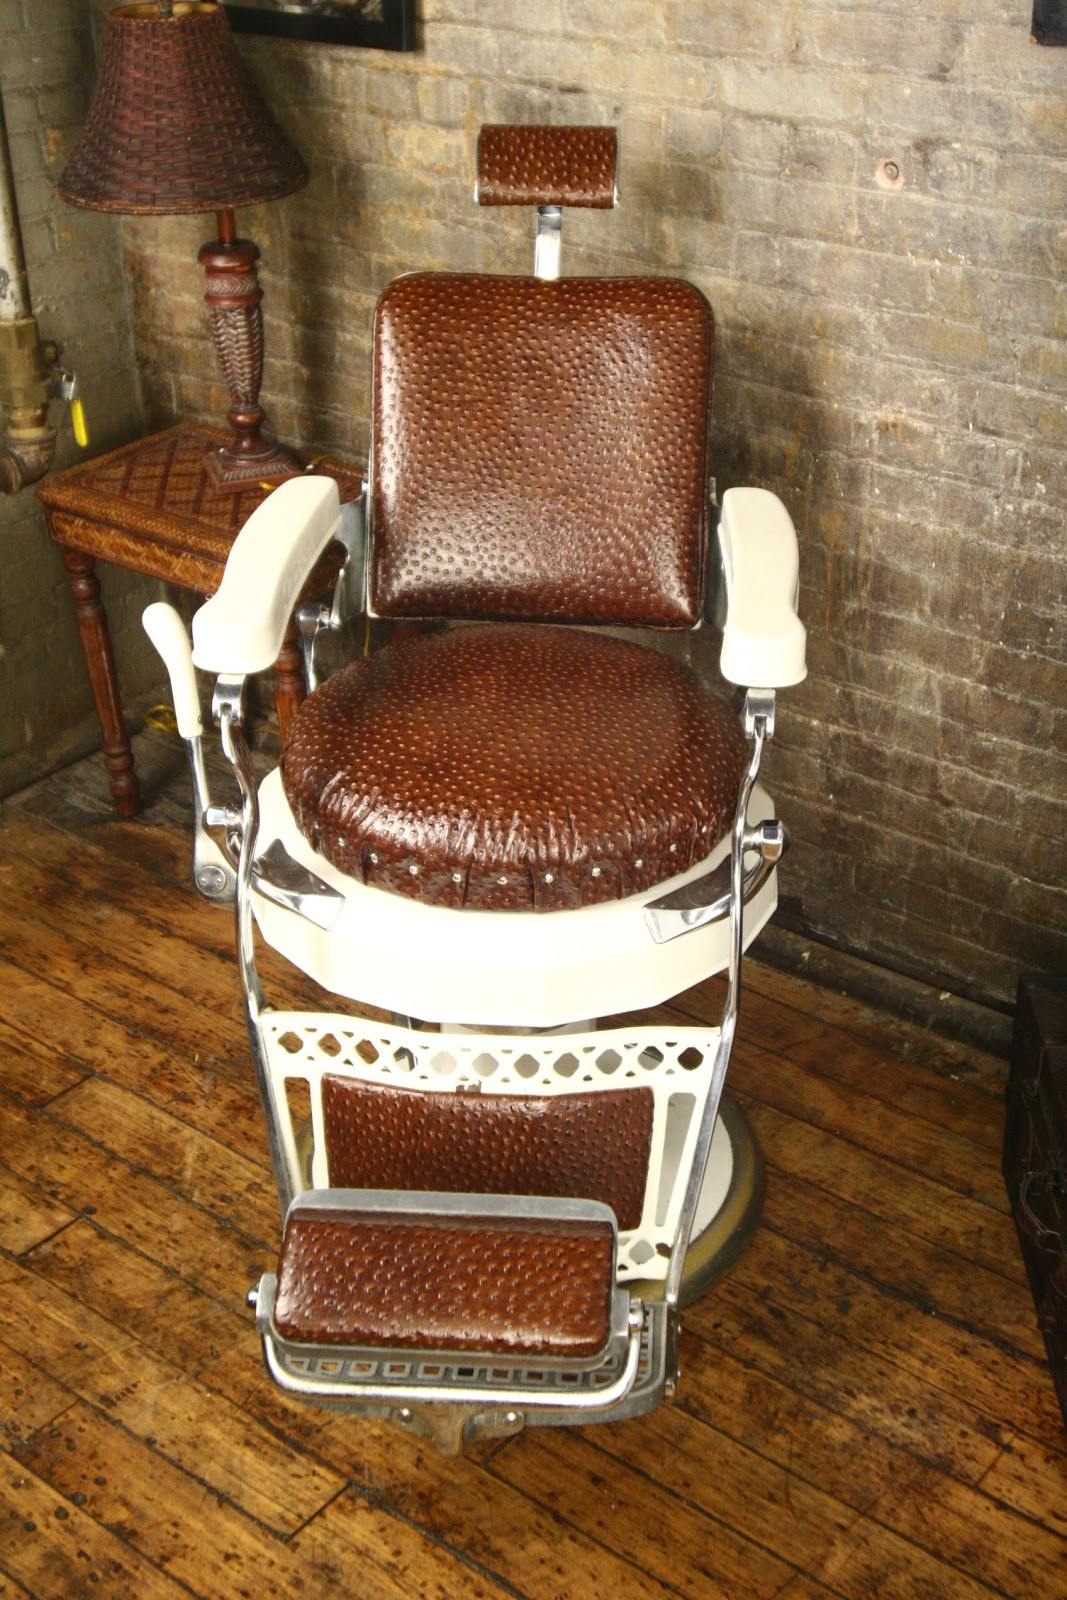 Antique Barber Chairs - Barber Girl Photos: มิถุนายน 2013